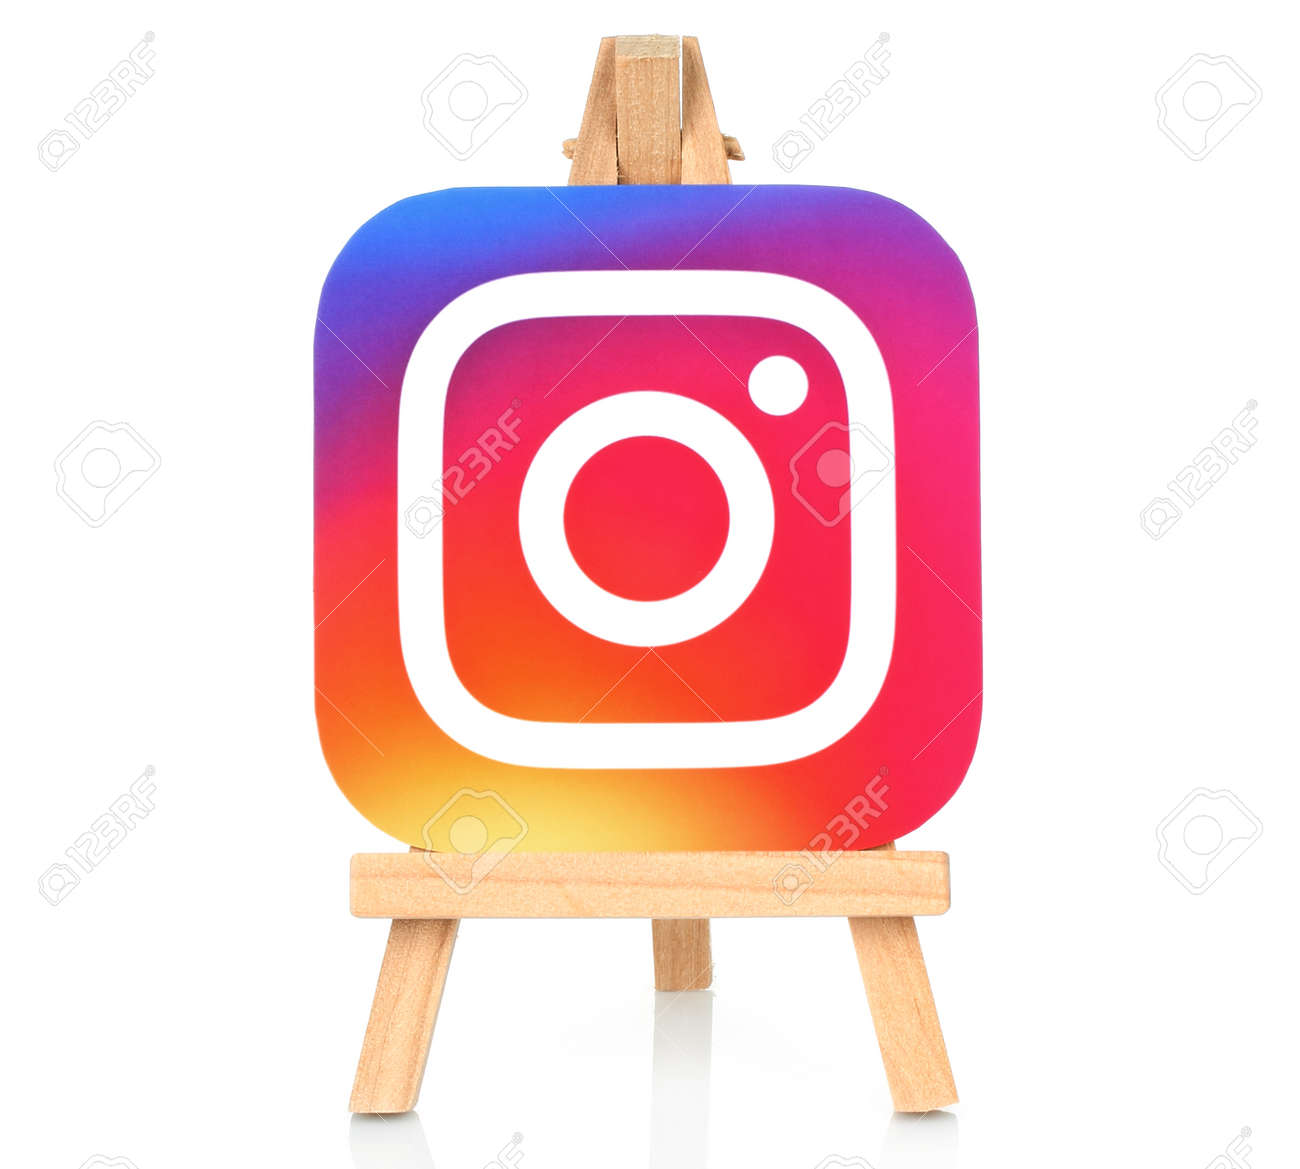 Kiev, Ukraine - August 30, 2016: Instagram icon printed on paper and placed on wooden easel. Instagram is an online mobile photo-sharing, video-sharing service - 62534973